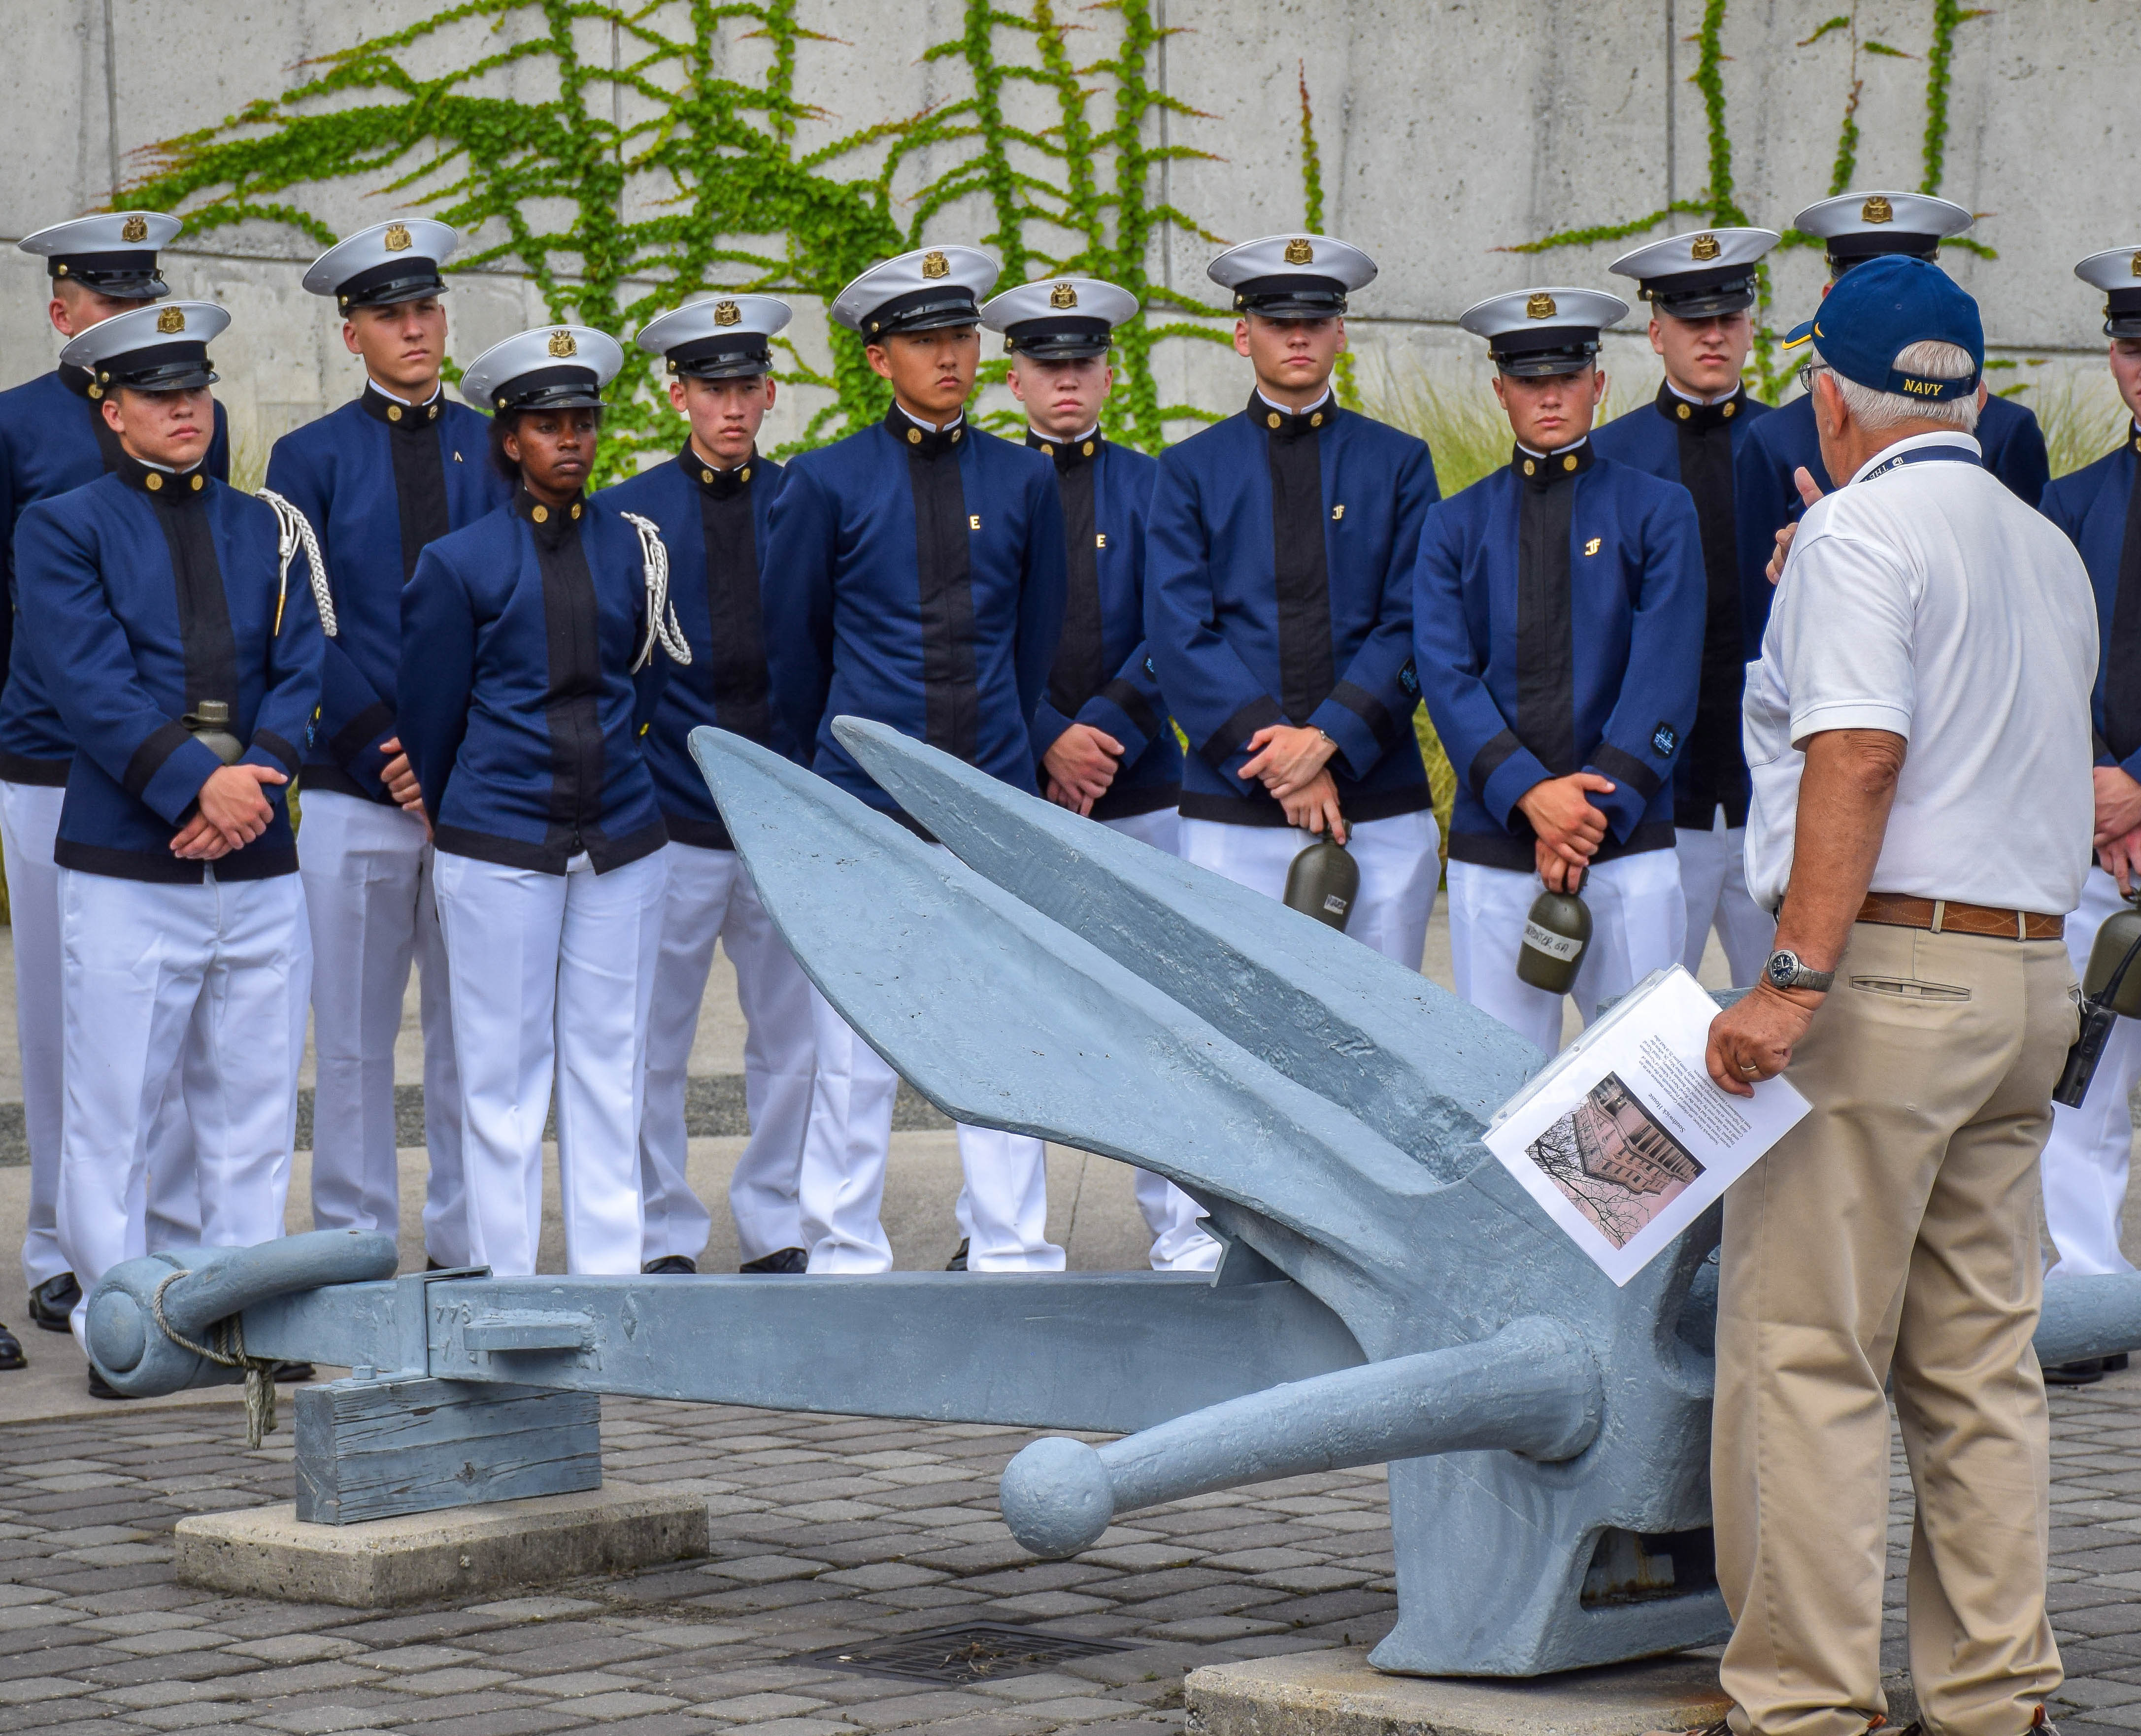 Cadets visiting the National D-Day Memorial in Bedford, Va. listening to a veteran speak